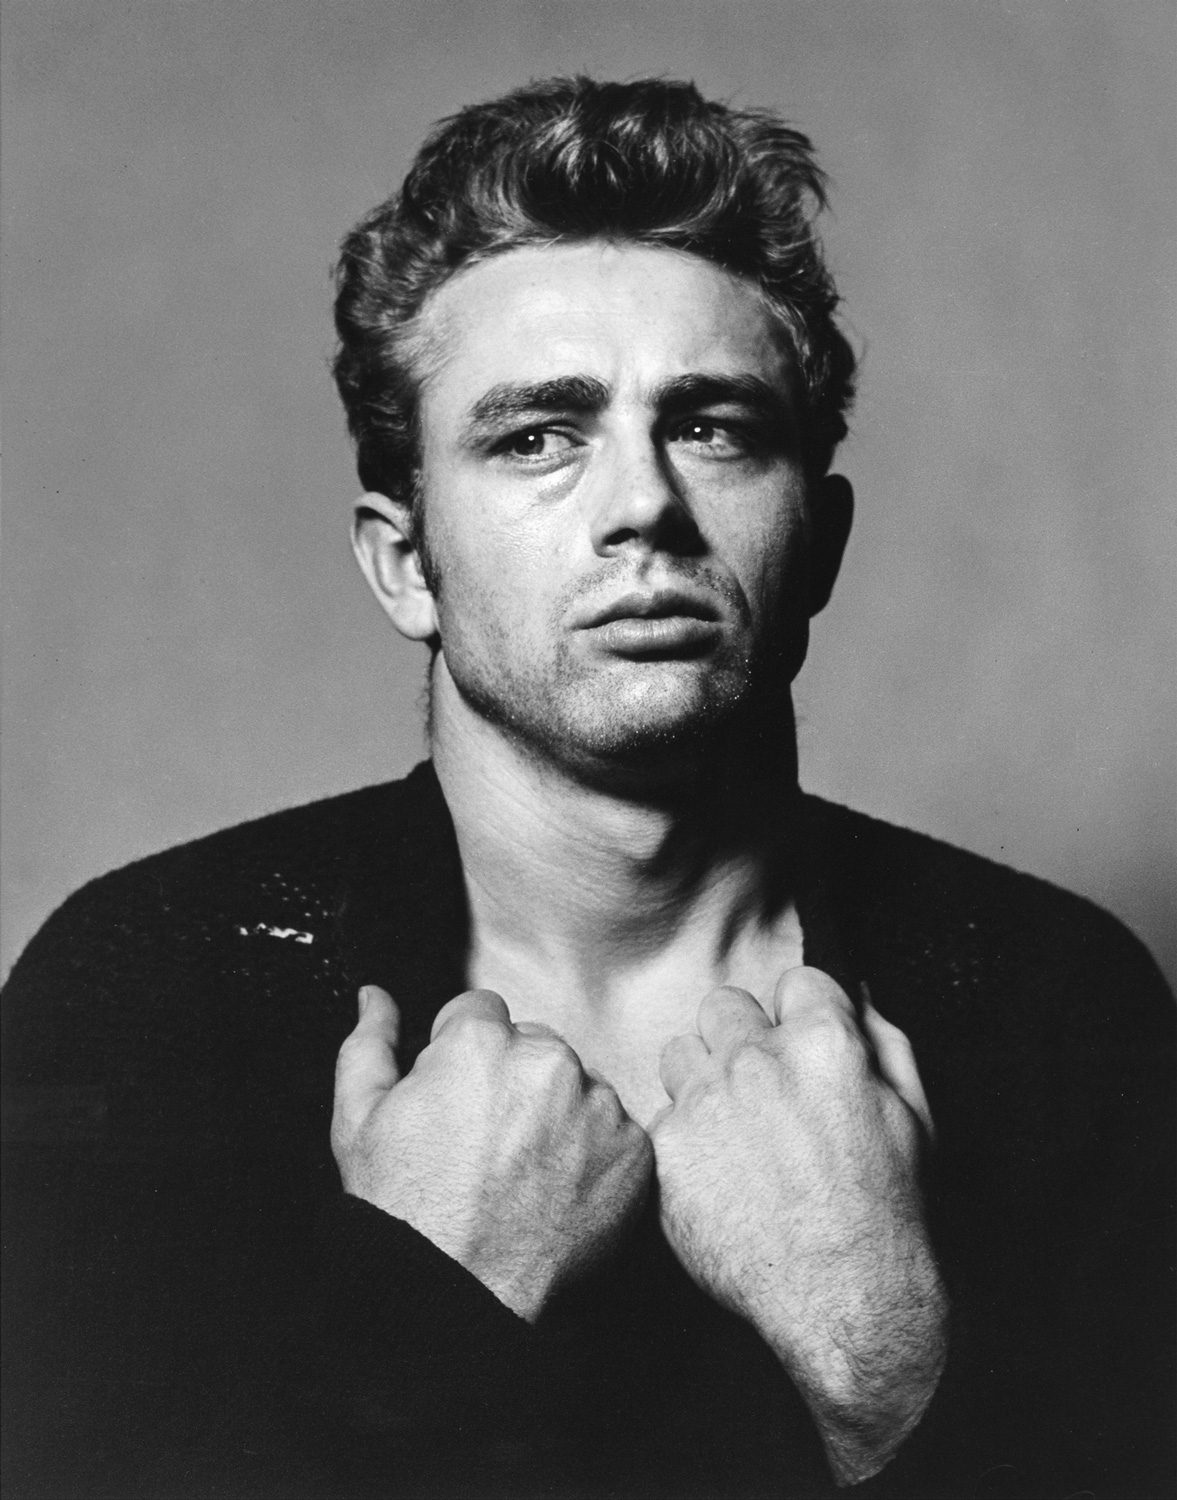 James Dean (from the Torn Sweater series)